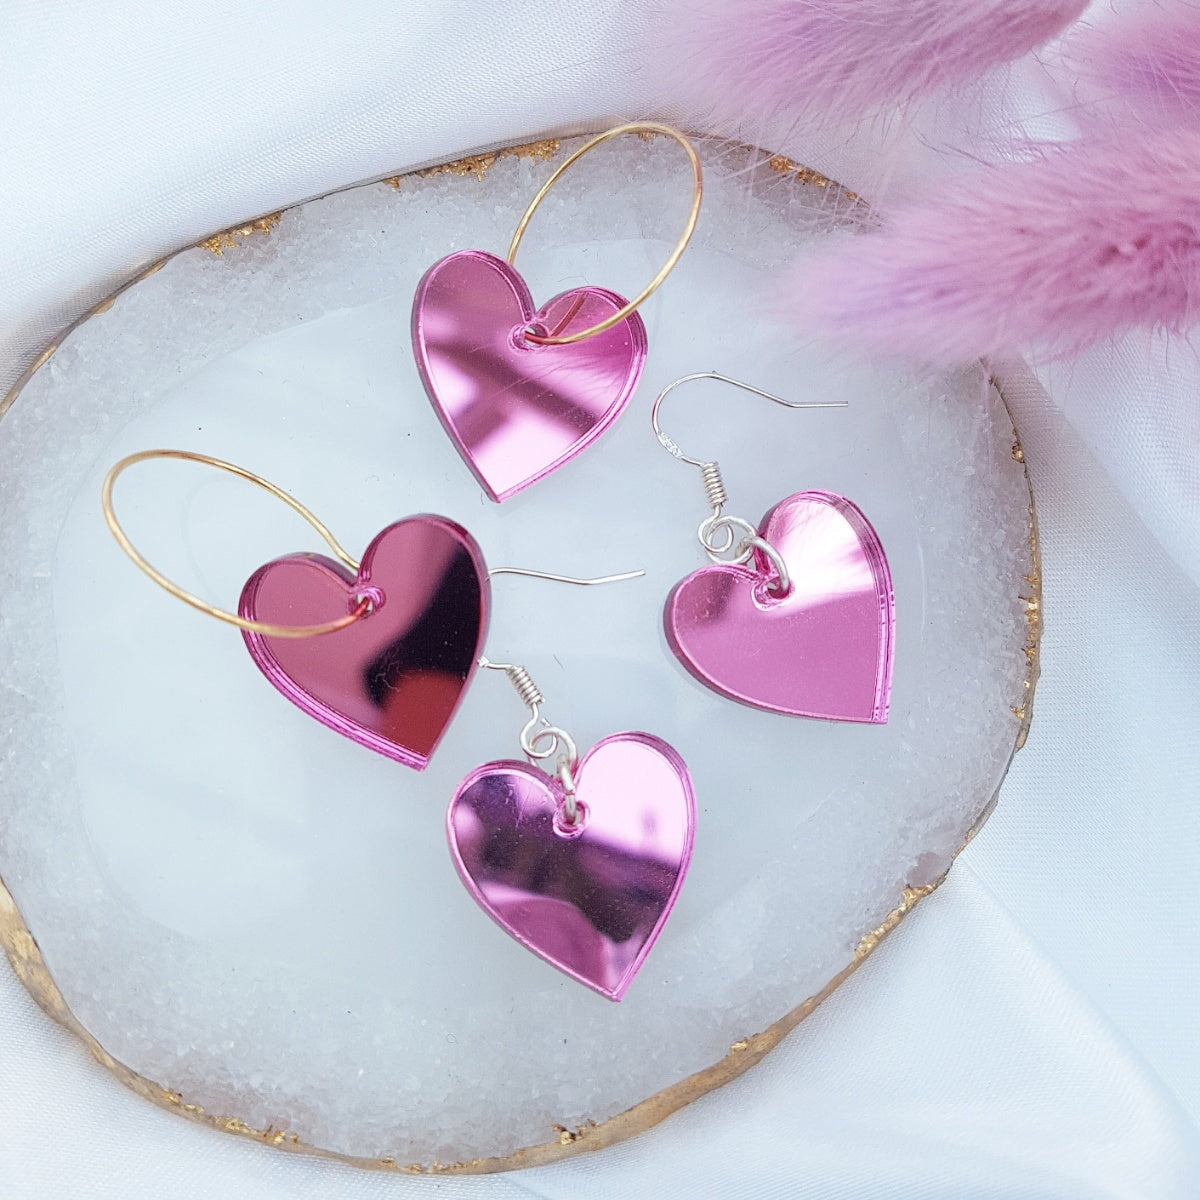 candy-pink-mirror-hearts